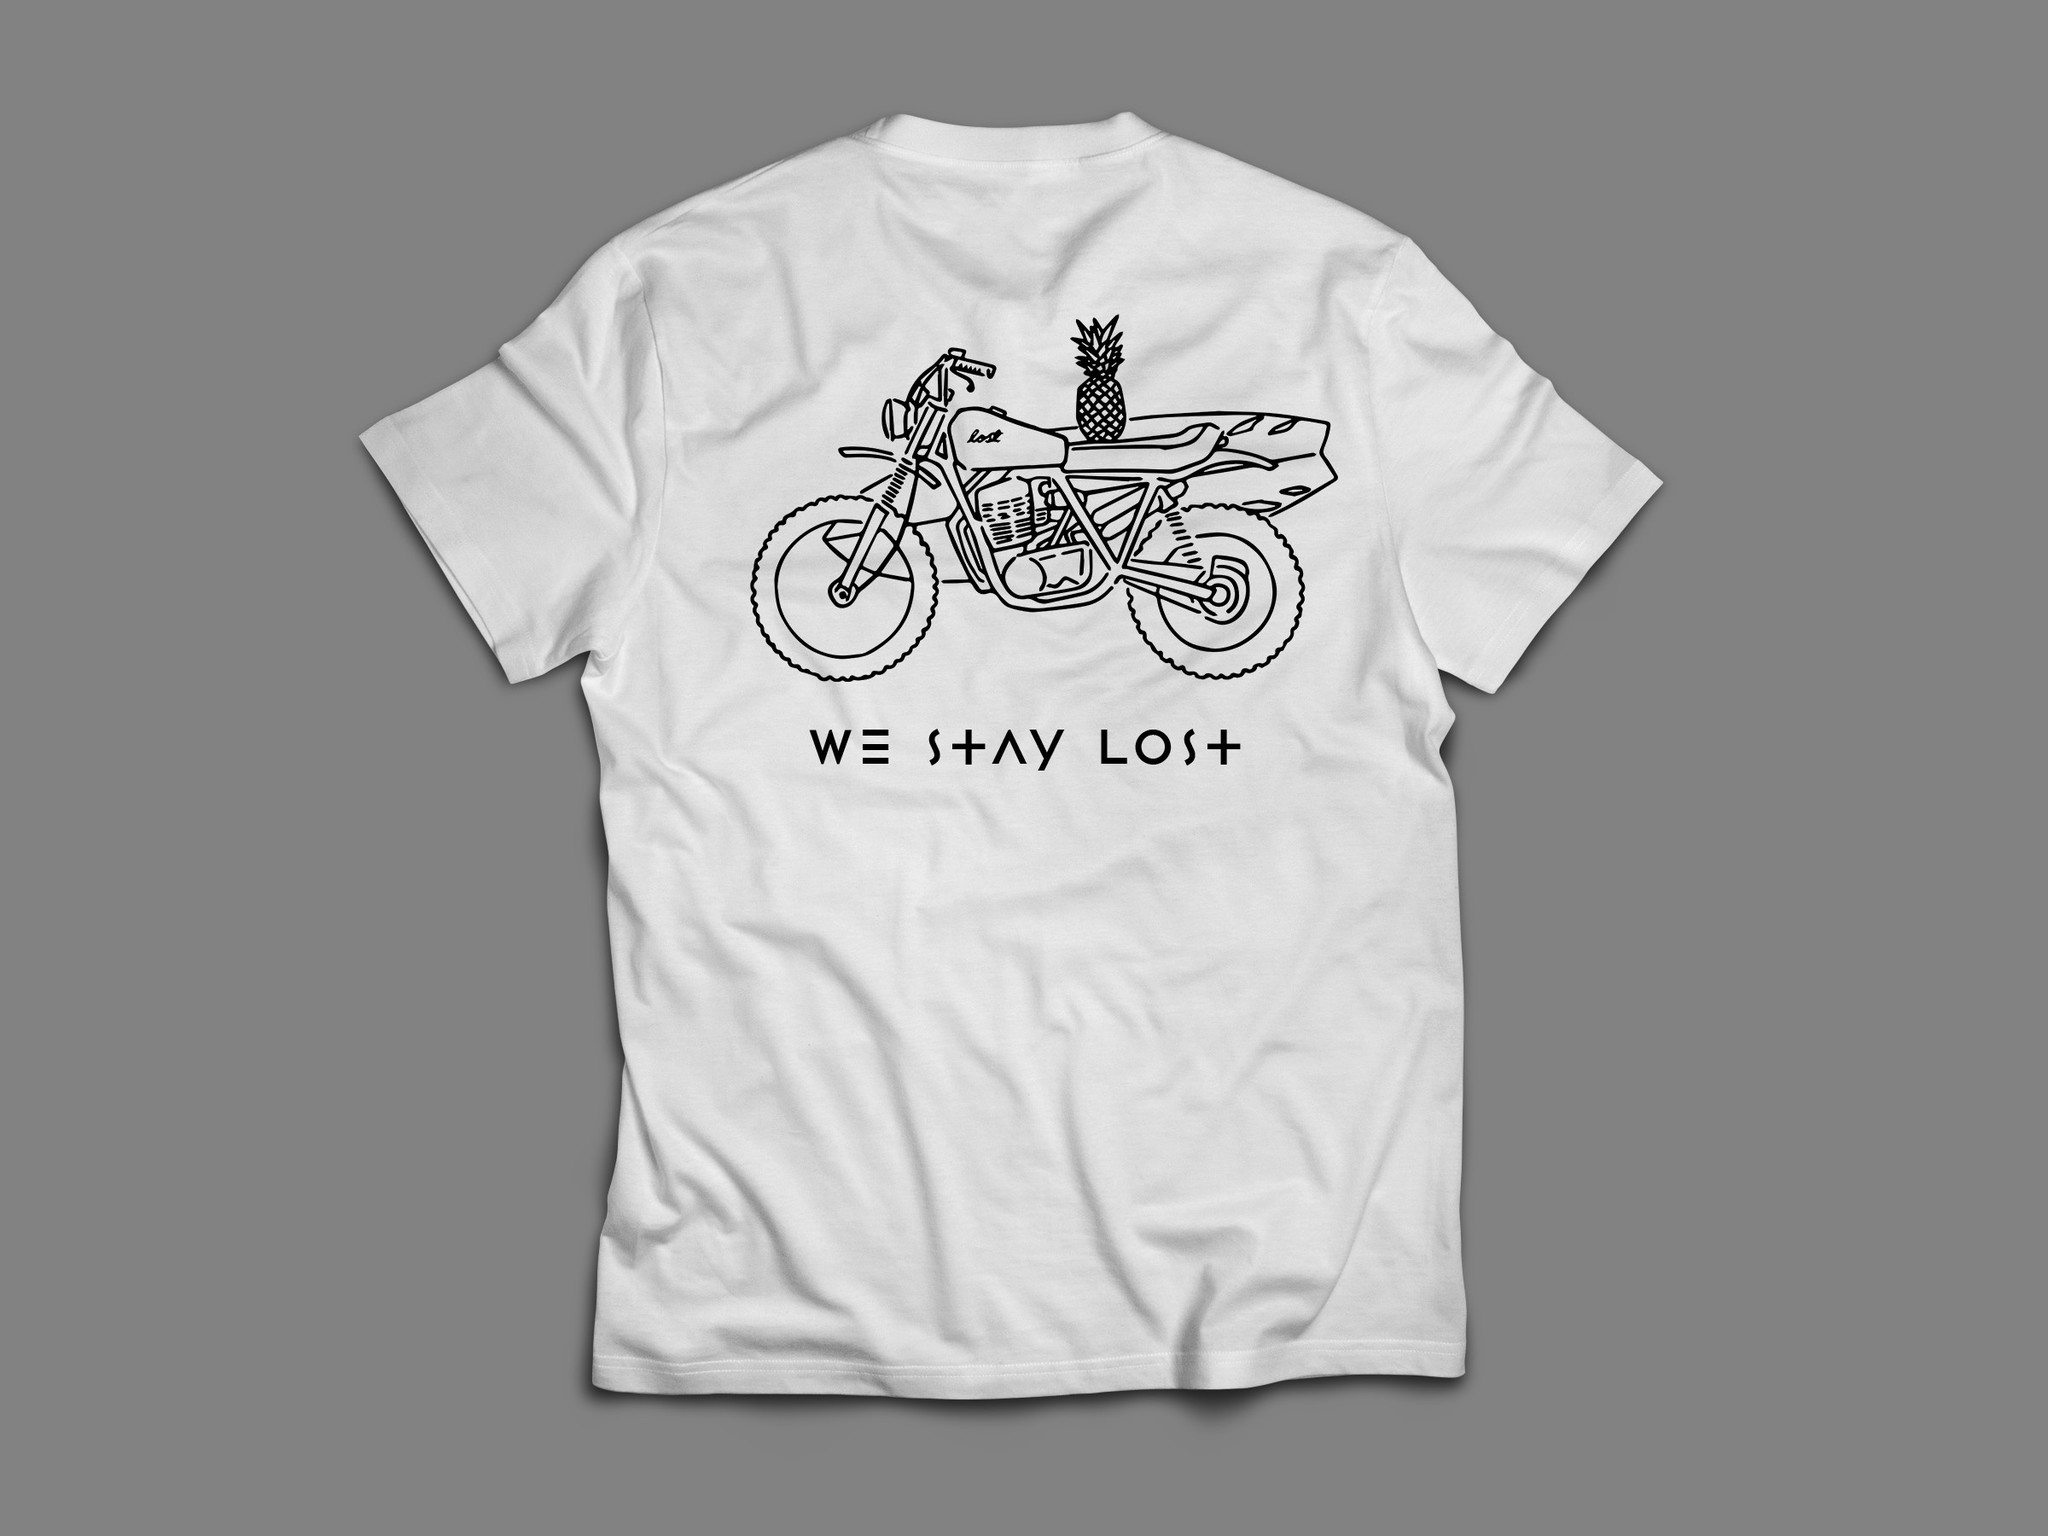 We Stay Lost We Stay Lost - Moto Tee